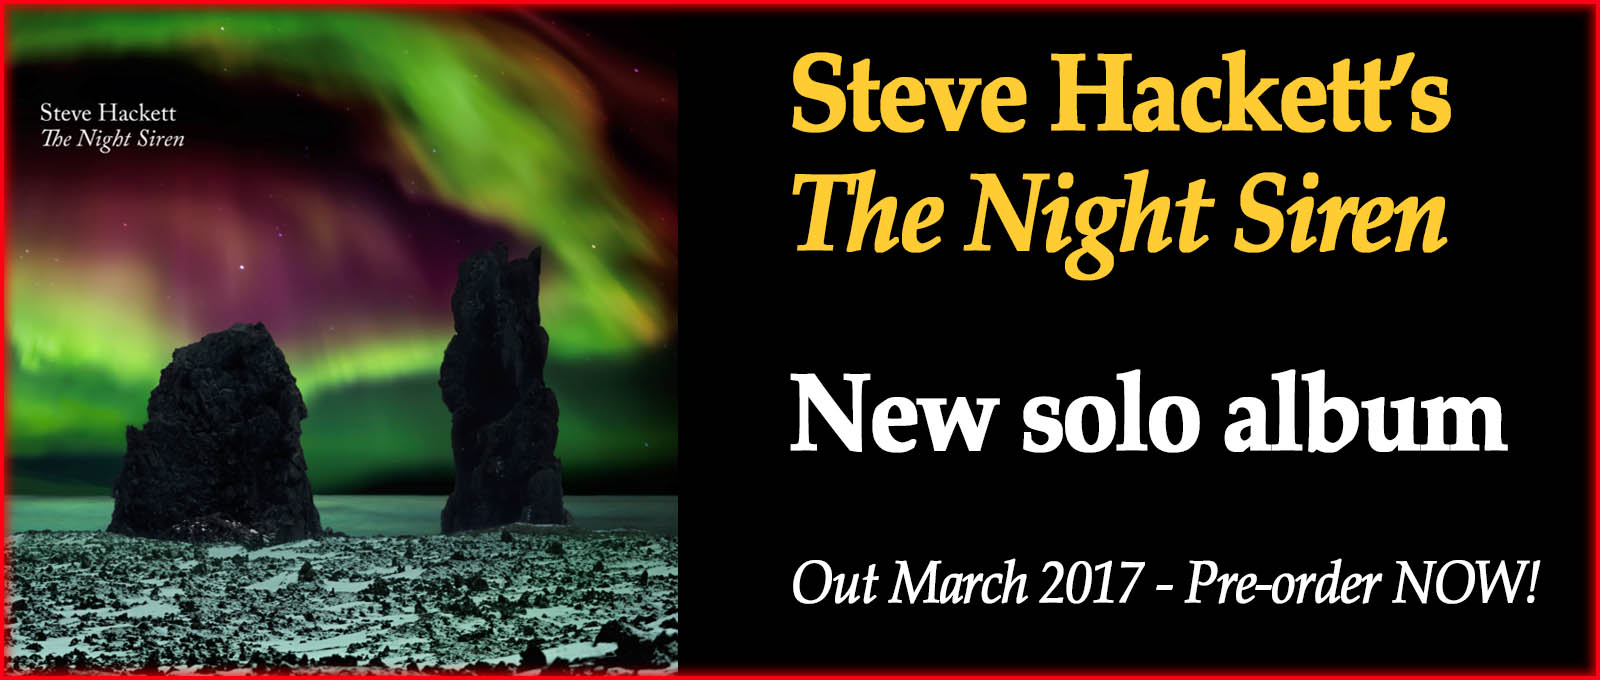 Steve Hackett - The Night Siren - new solo album